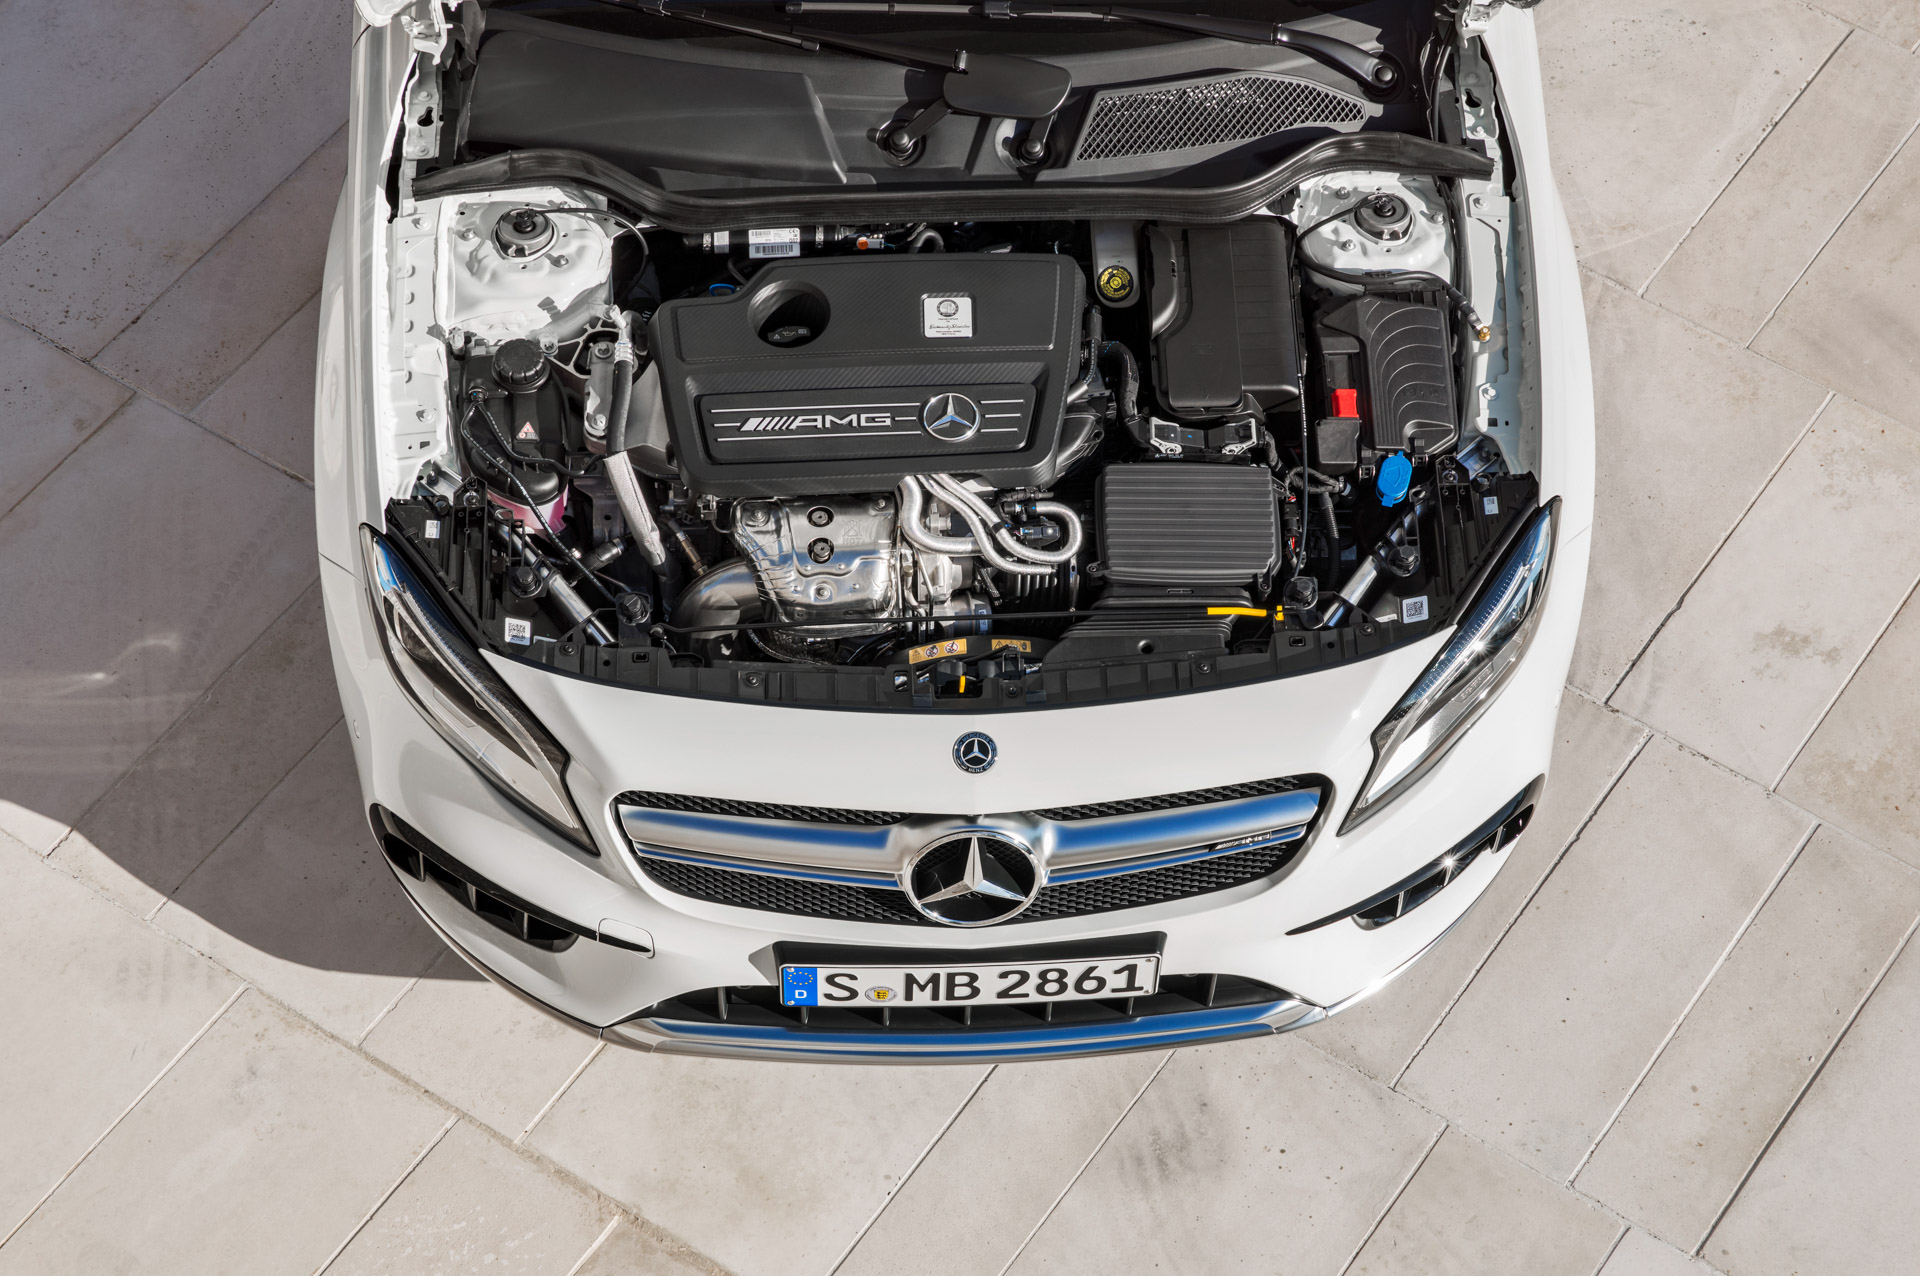 Mercedes-AMG GLA 45 4MATIC, Motor, 280 kW (381 PS) ;Kraftstoffverbrauch kombiniert: 7,4 l/100 km, CO2-Emissionen kombiniert: 172 g/km Mercedes-AMG GLA 45 4MATIC, engine, 280 kW (381 PS); Fuel consumption combined:  7,4 l/100 km; Combined CO2 emissions: 172 g/km